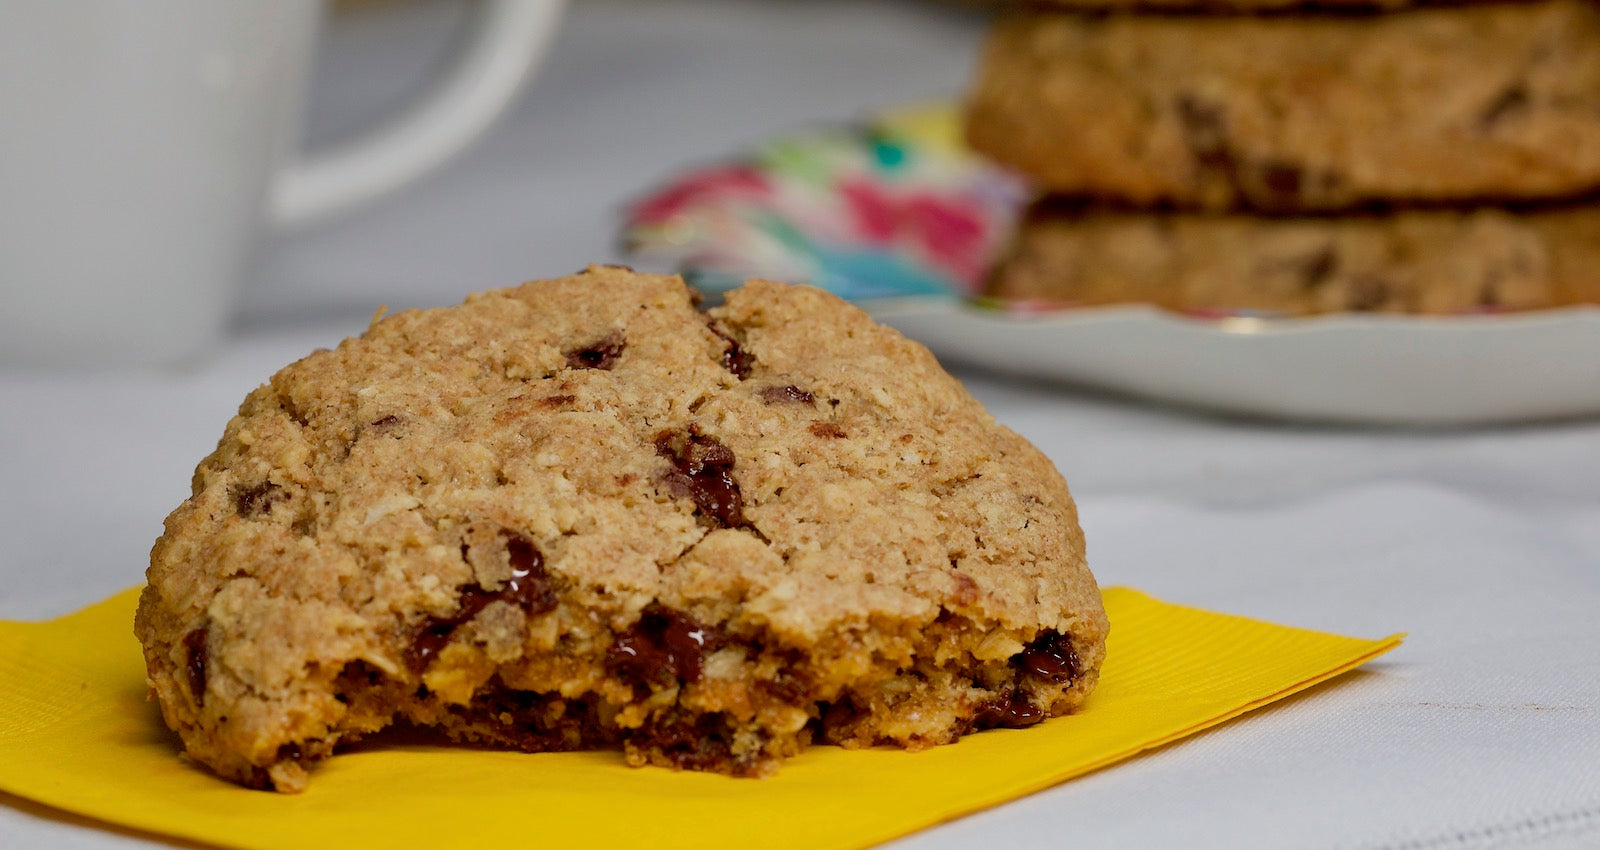 Soon to be world famous! Big Sky Bread Company whole wheat cookies are made with the best ingredients available, whole grain oats, Montana wheat flour, pure cream butter, and grandma's molasses.